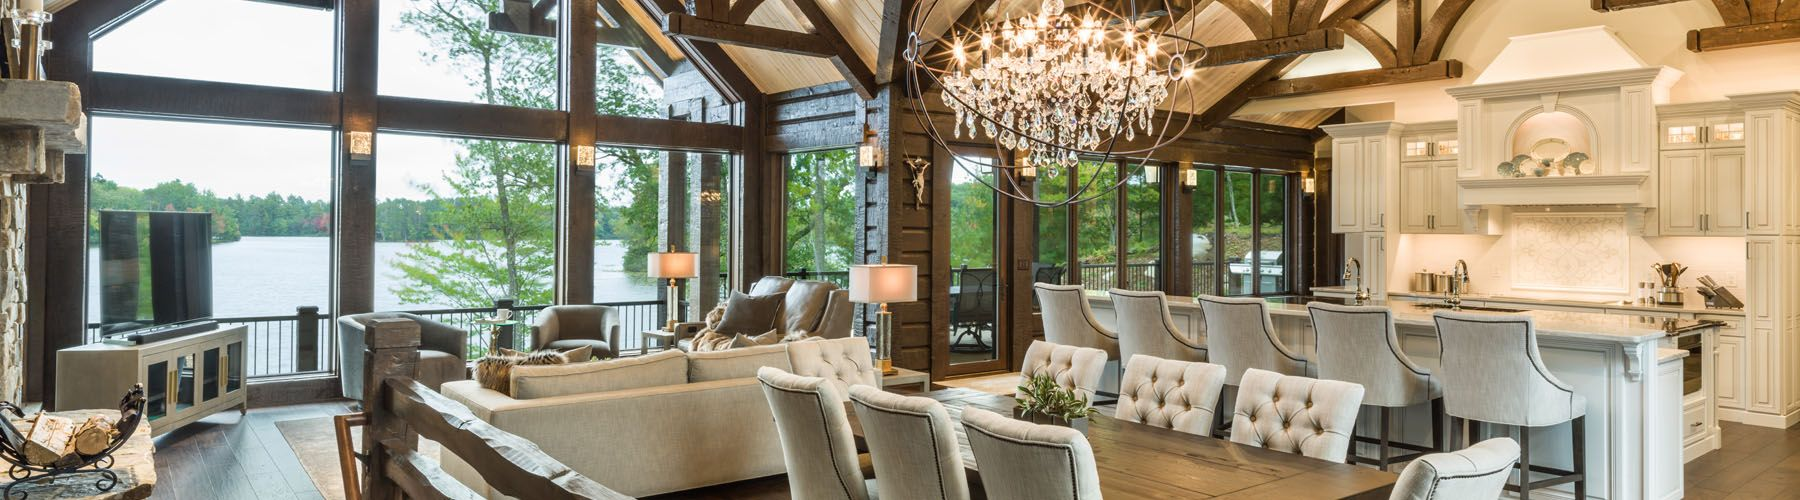 Golden Eagle Log and Timber Homes Plans & Pricing Plan Details Timber Lake 2779AR UCT